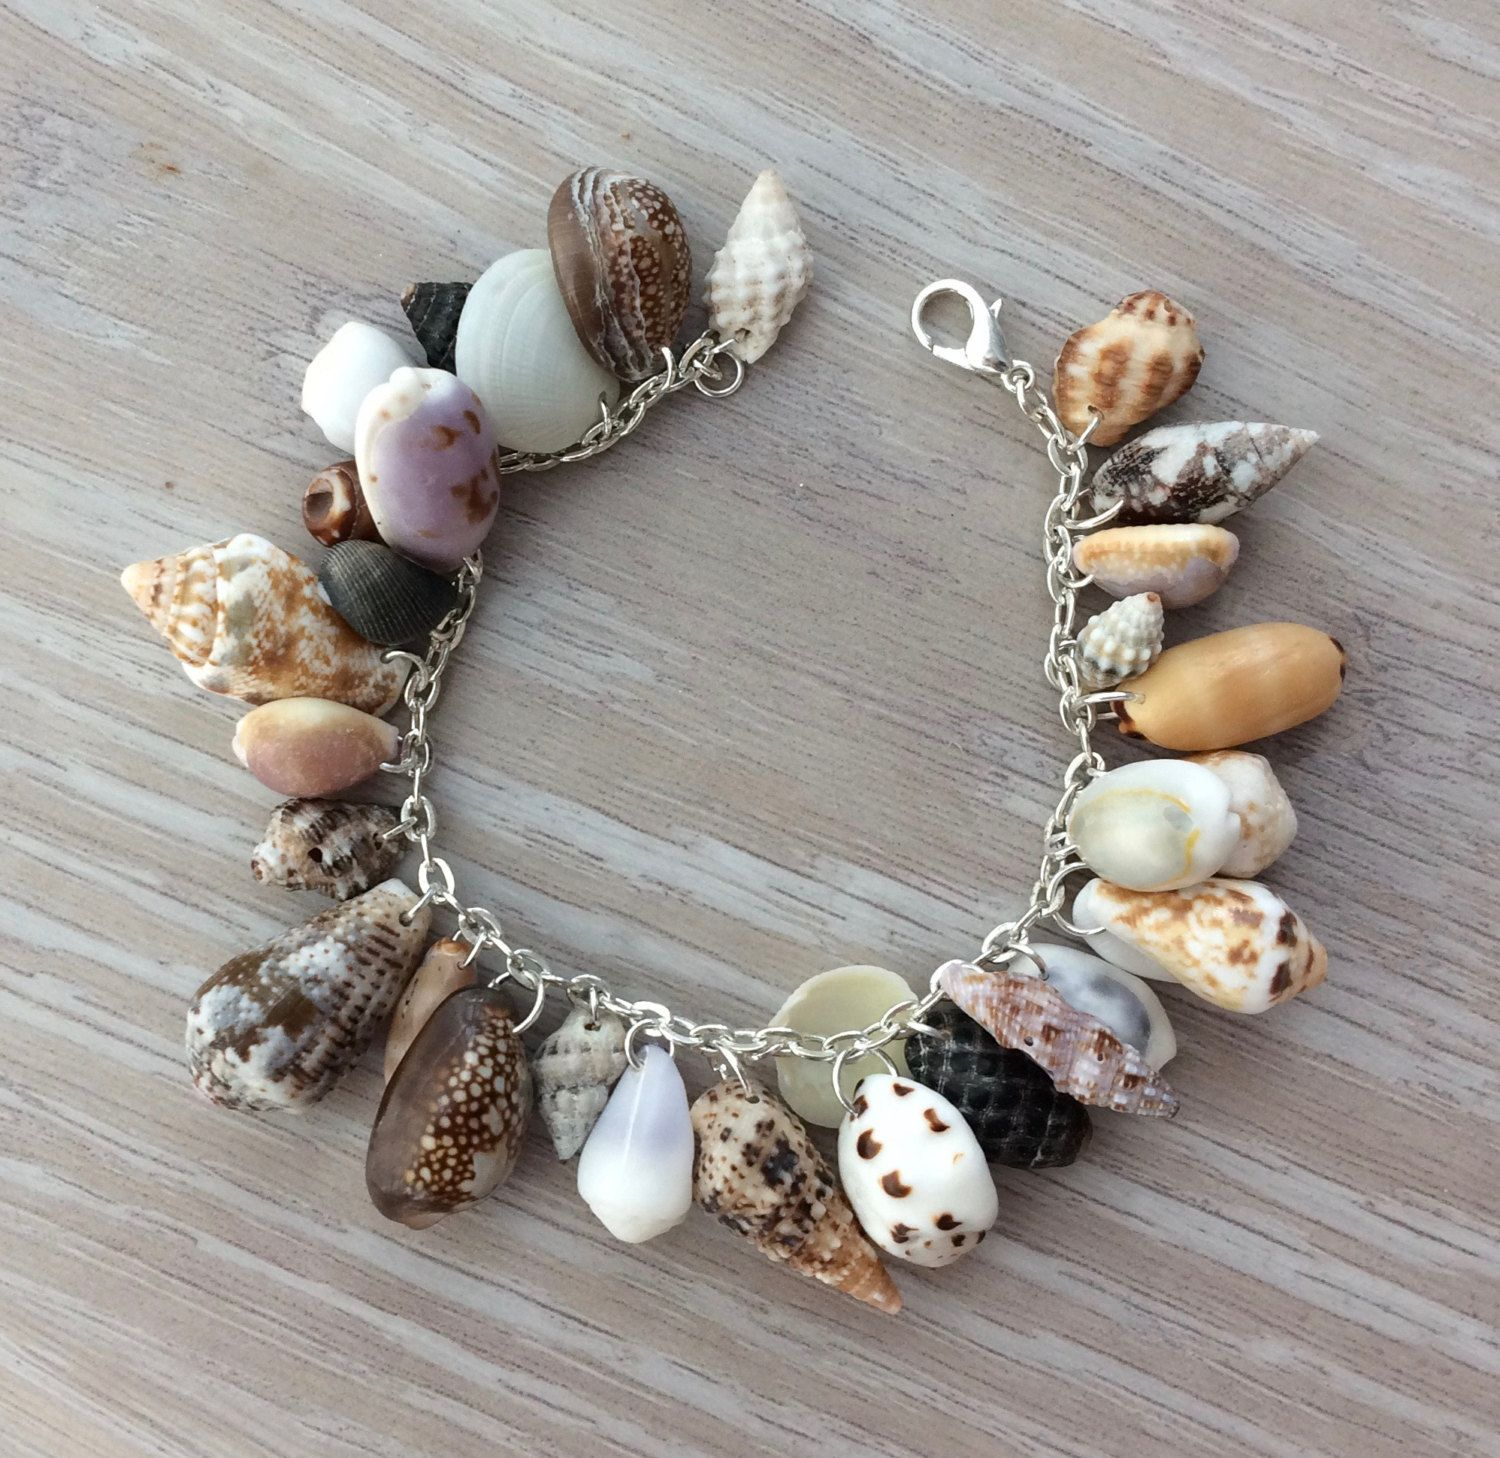 Beads Nice Natural Shell Gold Silver Spiral Shell Conch For Diy Handmade Pendant Seashells Home Decoration Boho Beach Jewelry Women Bijoux Ideal Gift For All Occasions